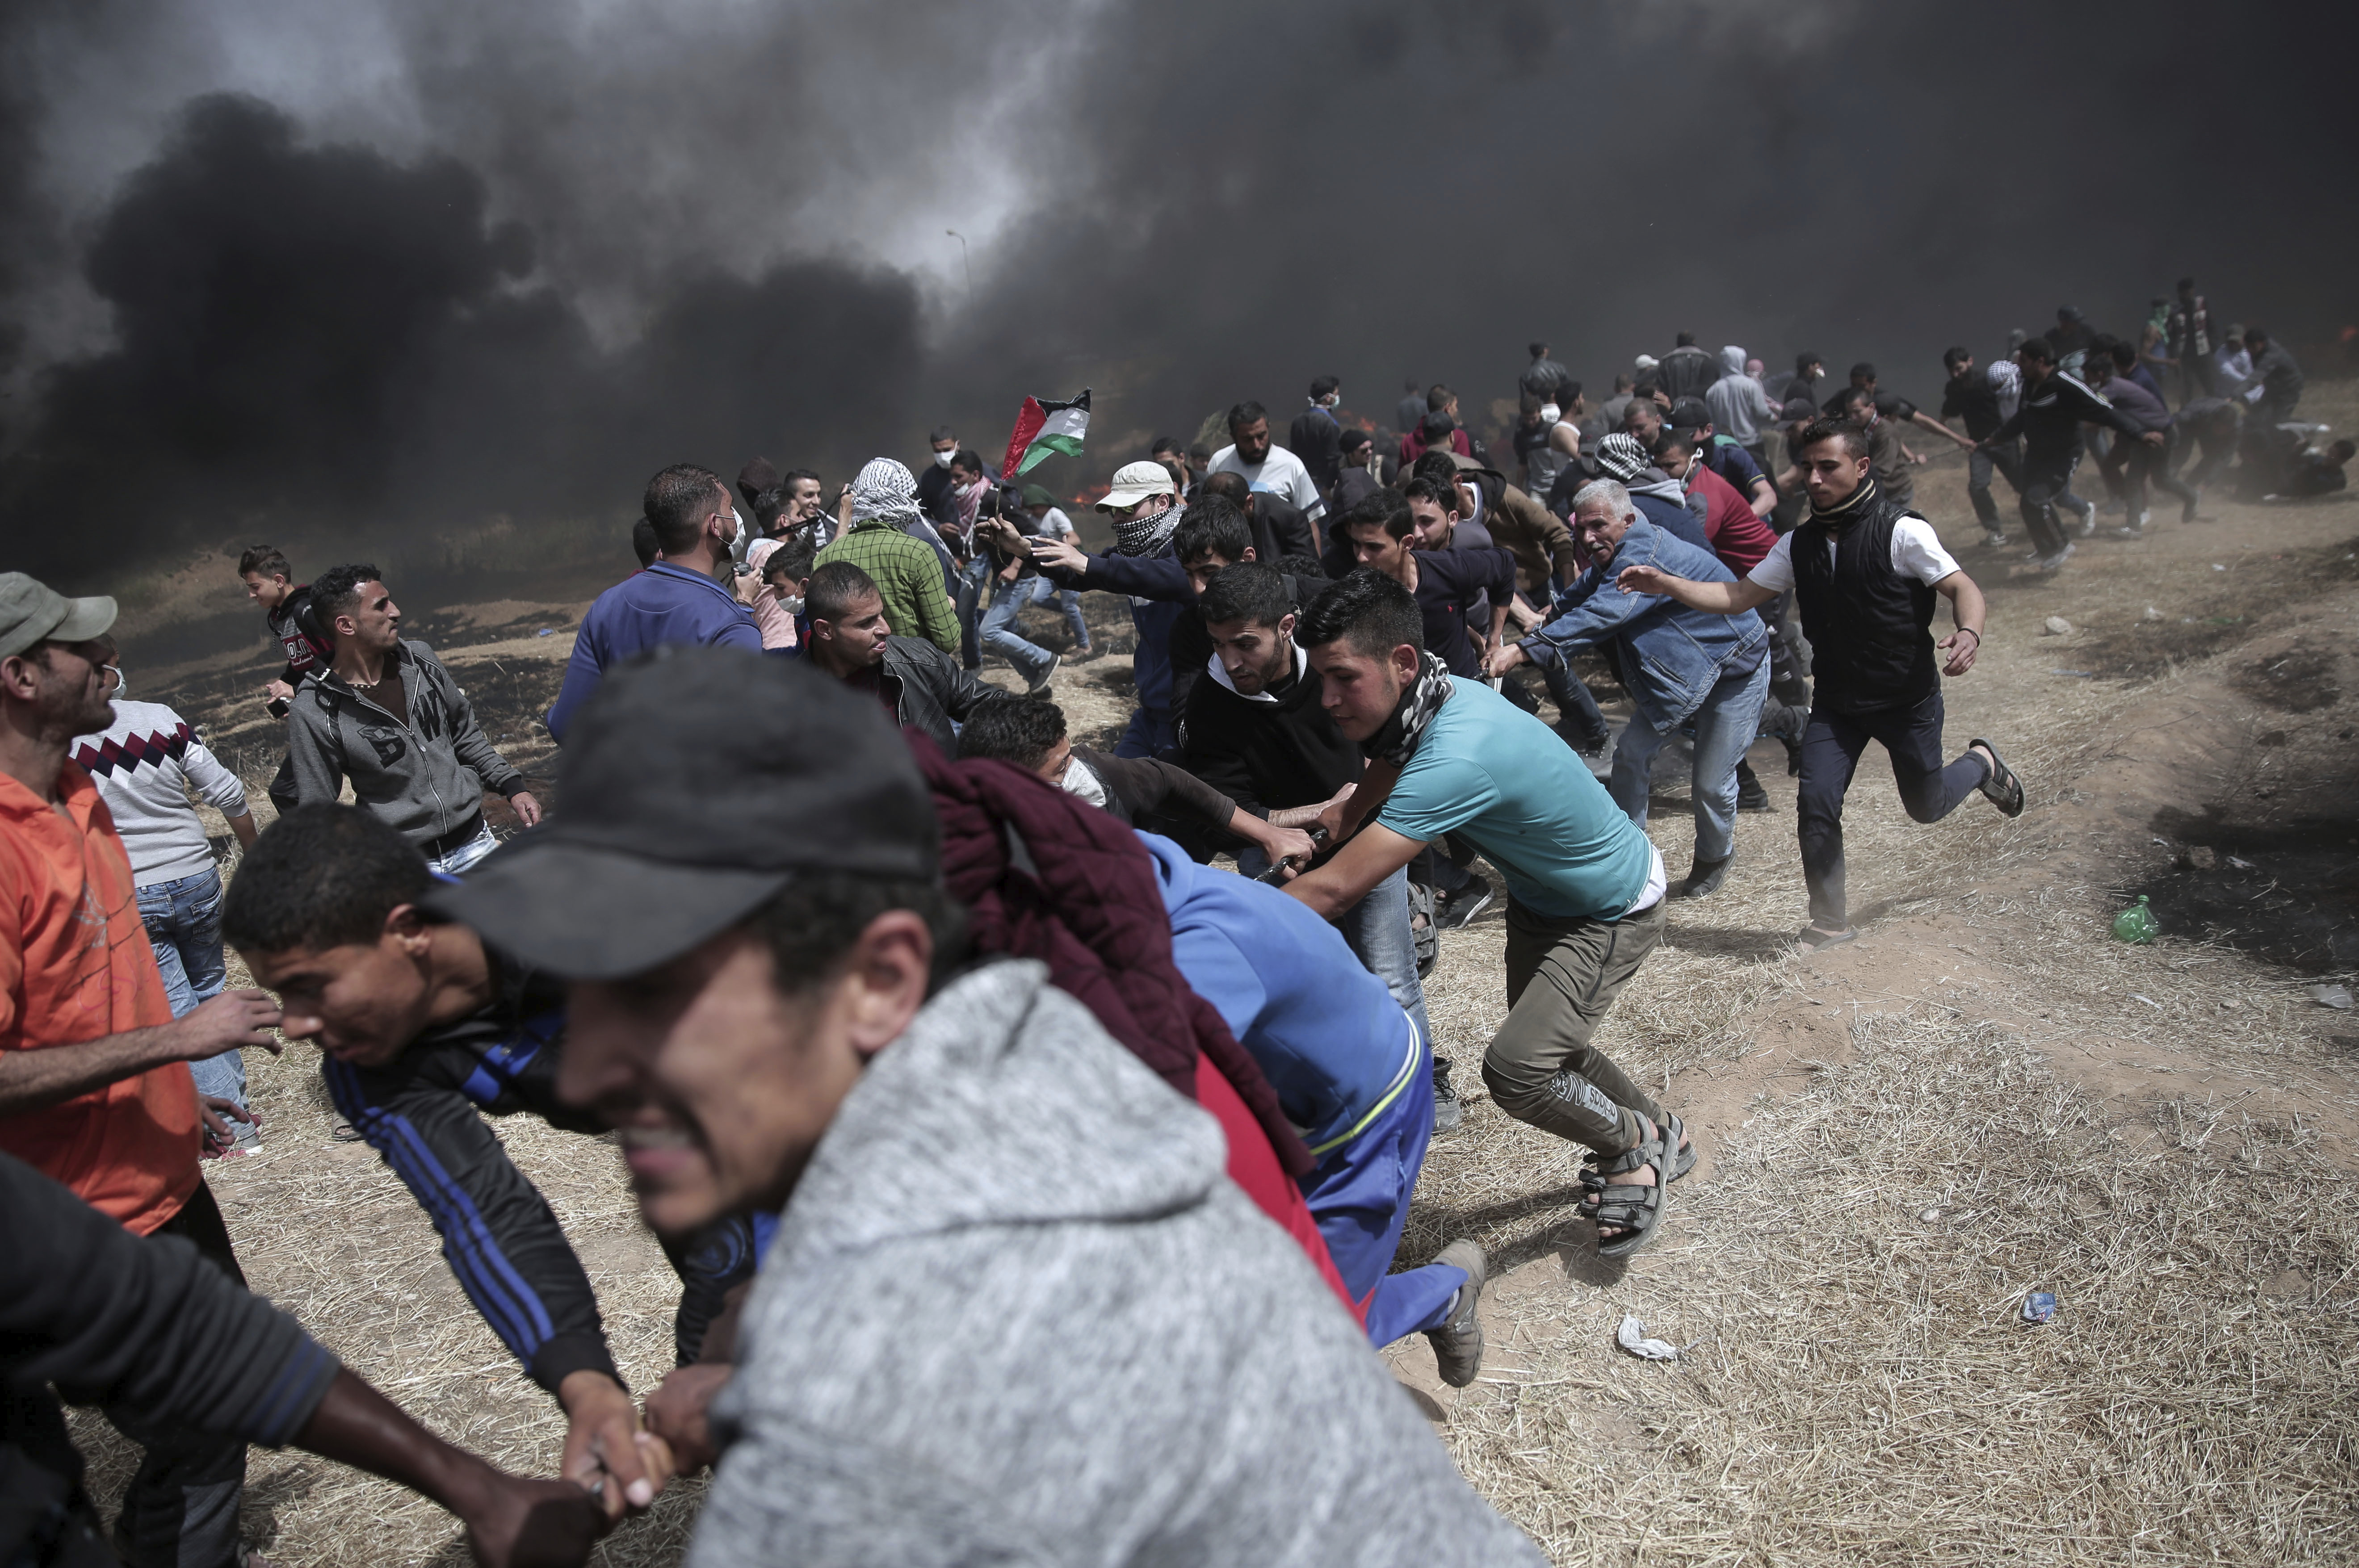 Palestinian protesters chant slogans as they pull part of the fence that the Israeli Army placed, during a protest at the Gaza Strip's border with Israel, April 13, 2018.